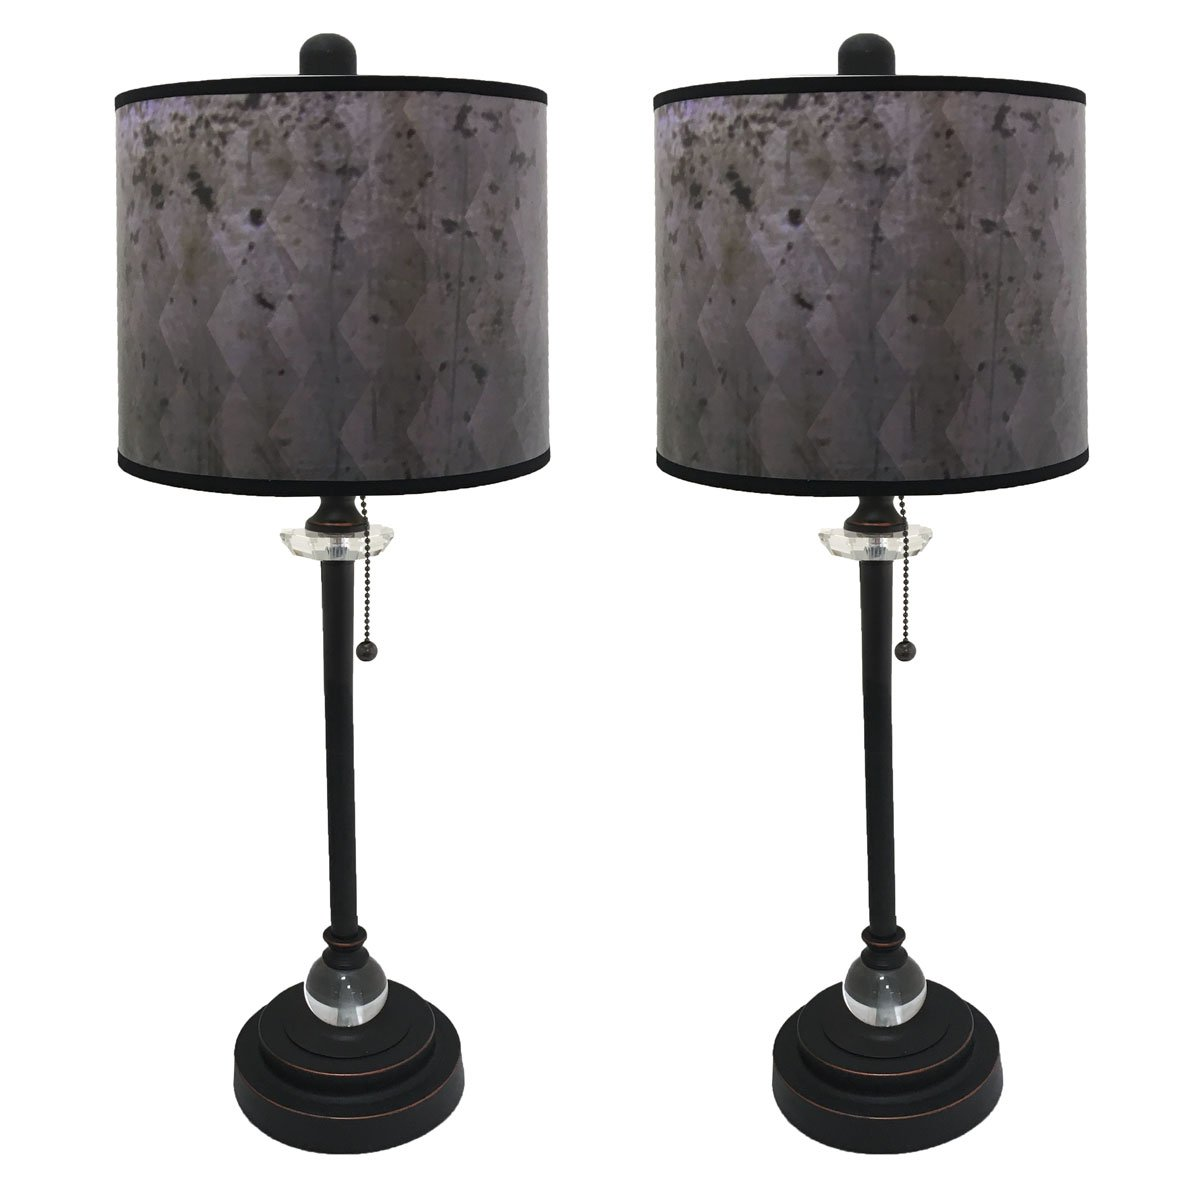 Royal Designs 28'' Crystal and Oil Rub Bronze Buffet Lamp with Black Snakeskin Diamond Design Hard Back Lamp Shade, Set of 2 by Royal Designs, Inc